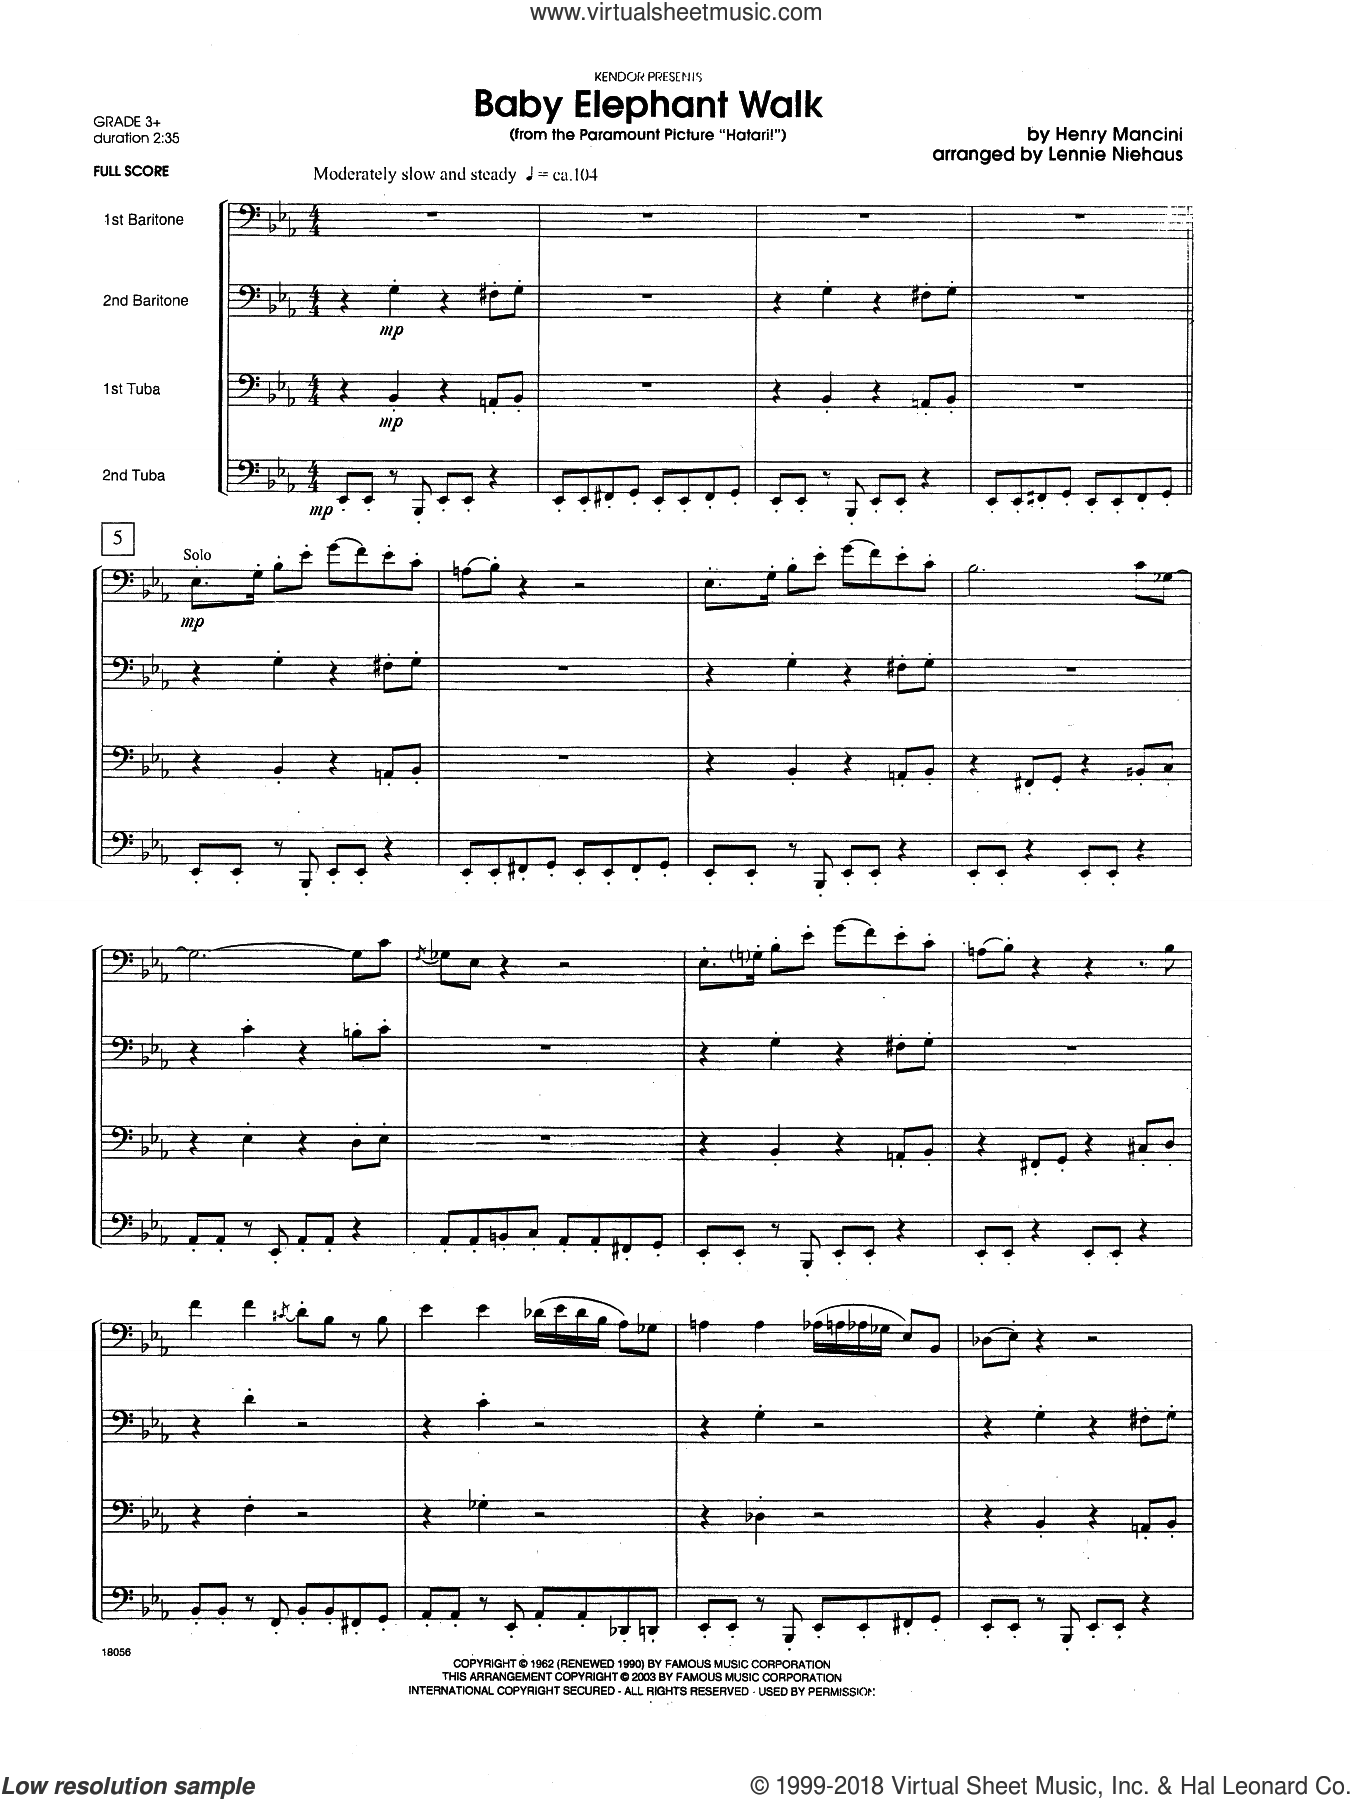 Baby Elephant Walk (From The Paramount Picture 'Hatari!') (COMPLETE) sheet music for brass quartet by Henry Mancini and Lennie Niehaus, intermediate skill level